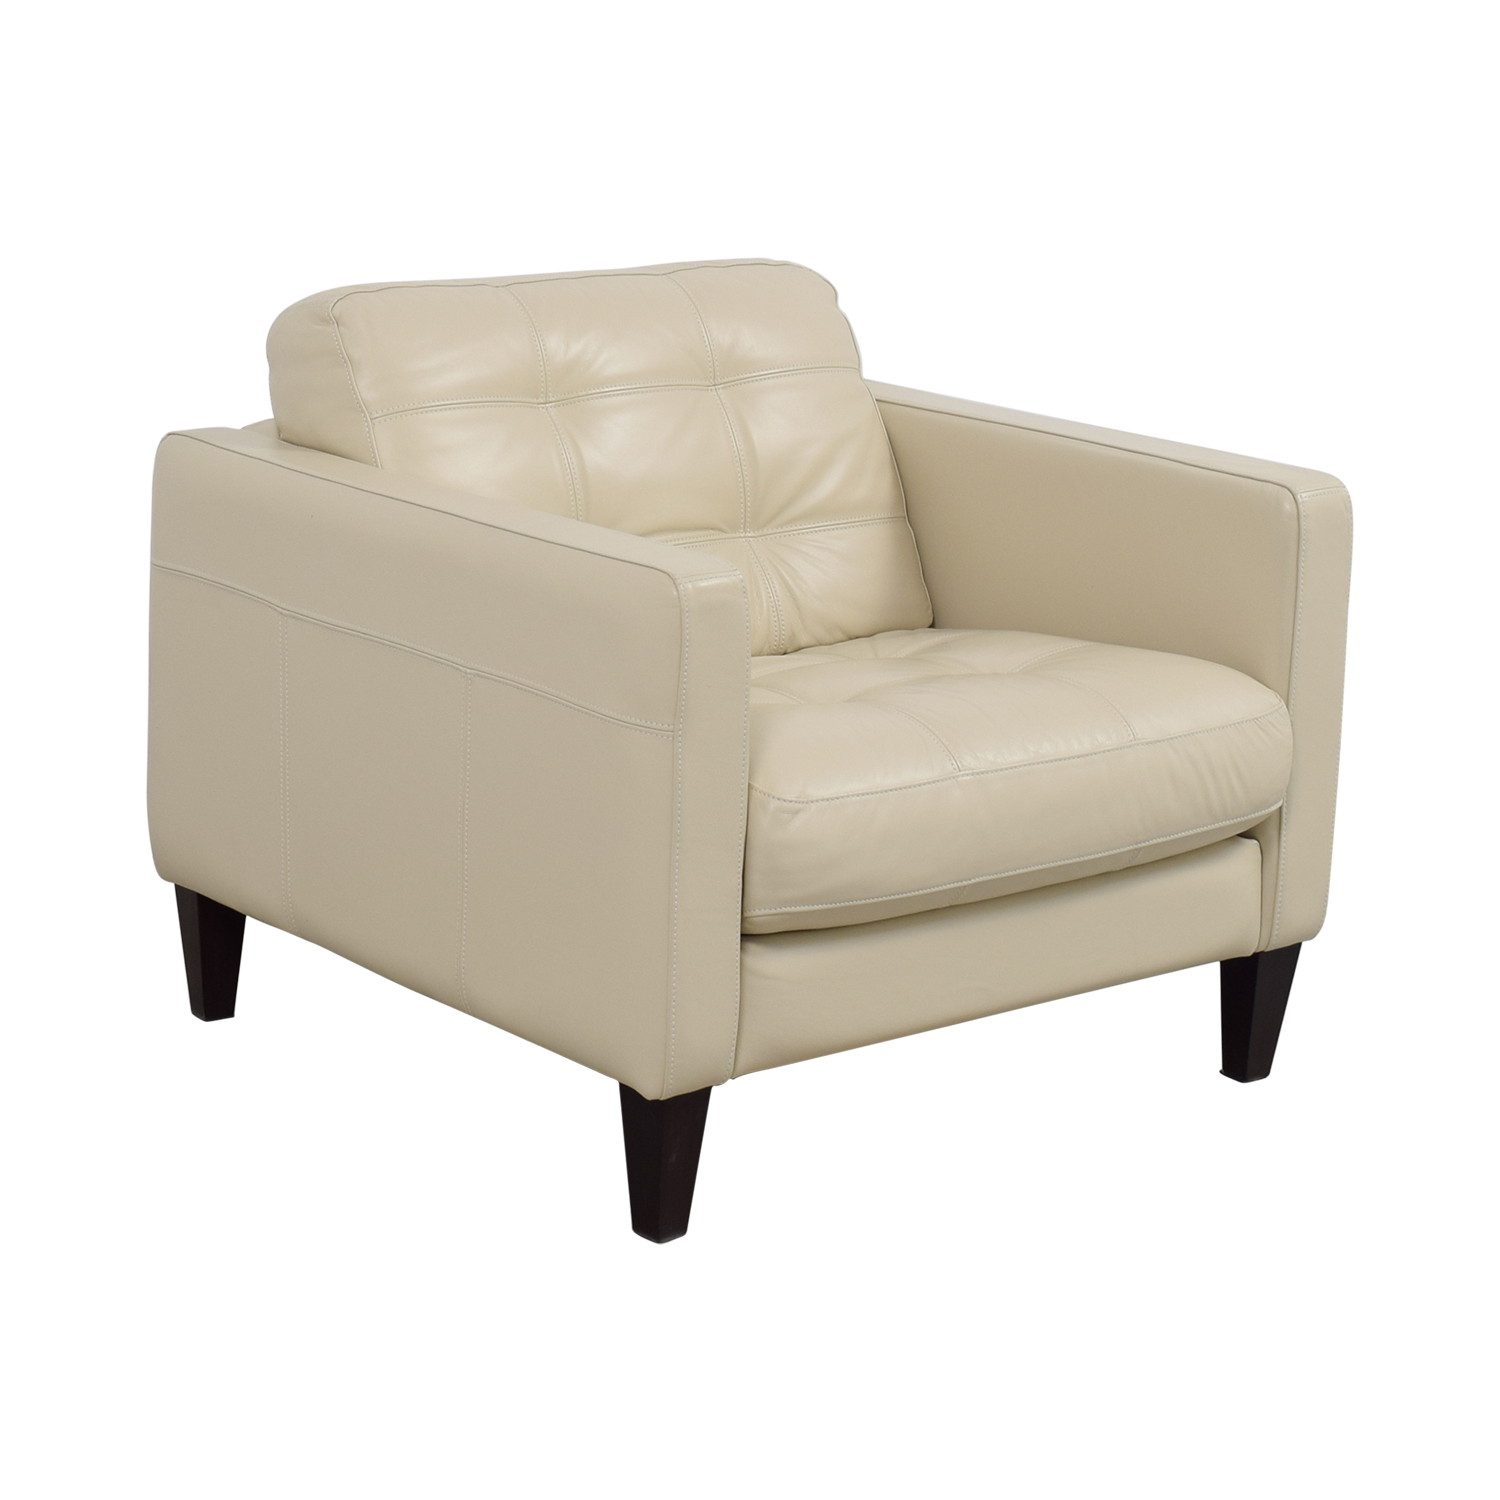 48% OFF - Macy\'s Macy\'s Milano White Leather Tufted Accent Chair / Chairs